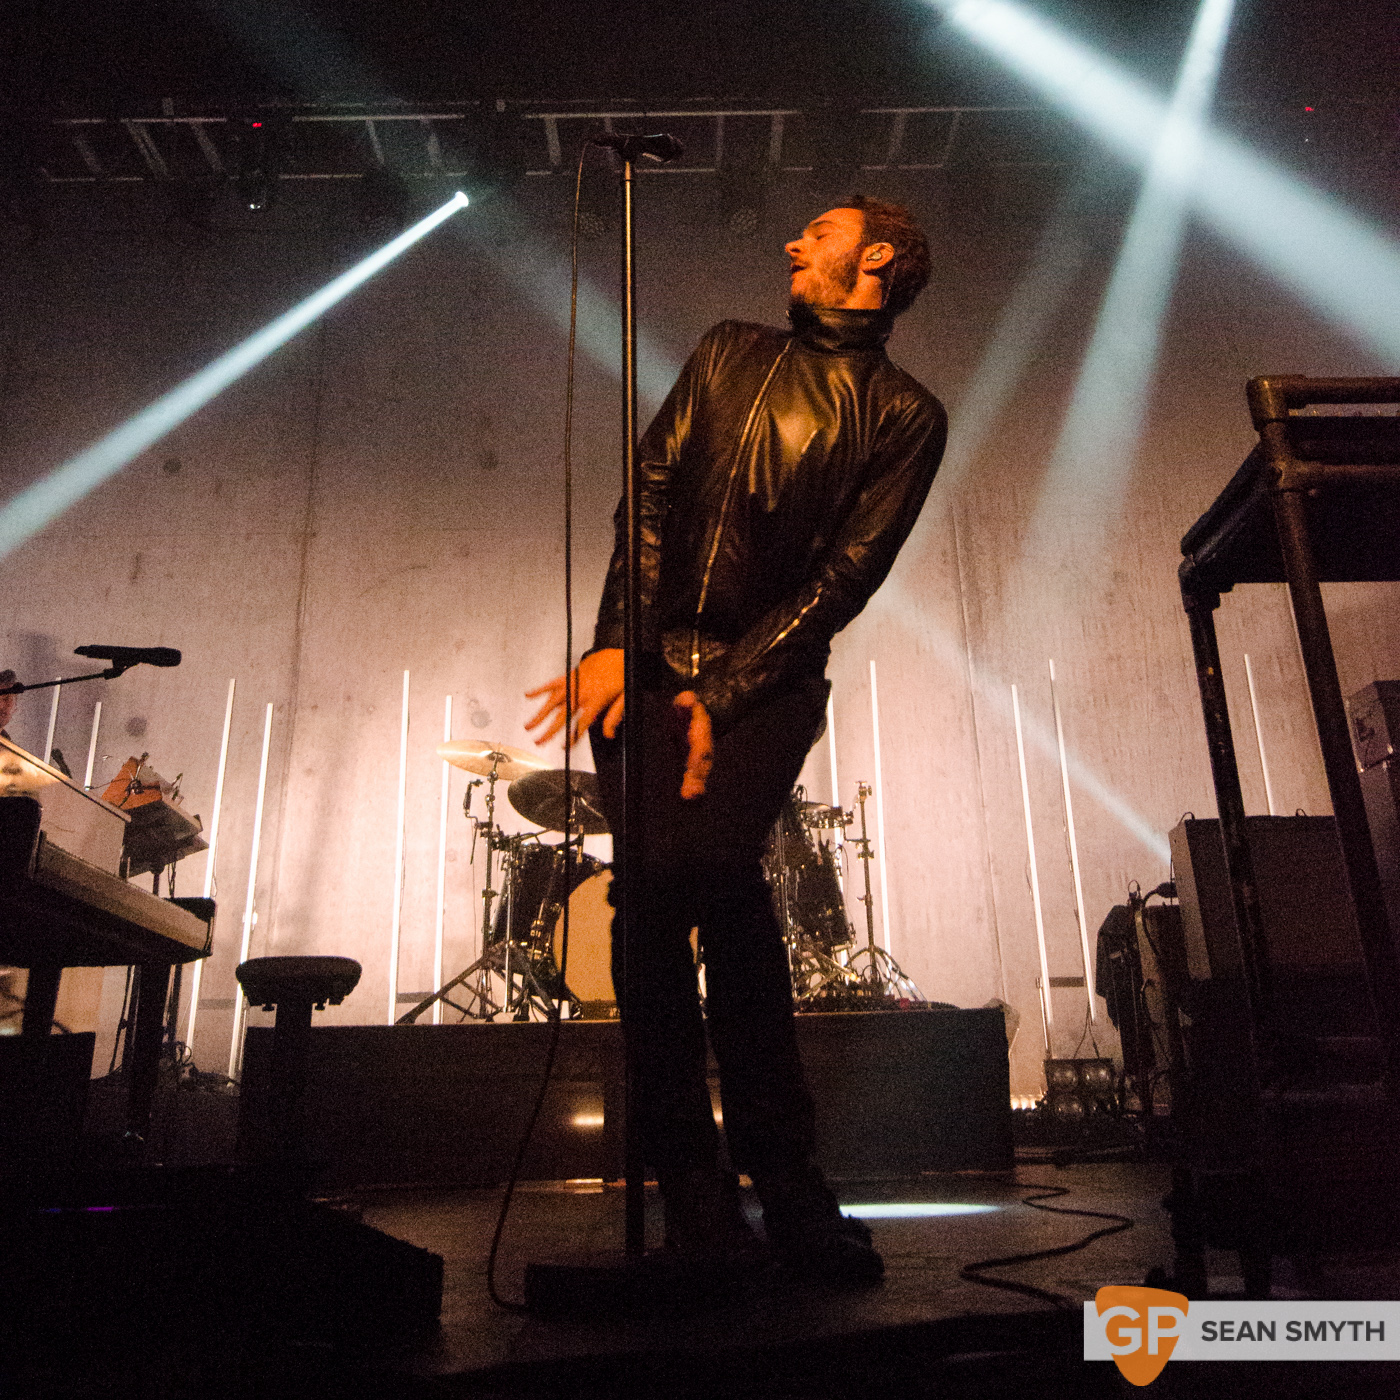 editors-at-the-olympia-theatre-by-sean-smyth-10-10-15-9-of-28_21469303773_o